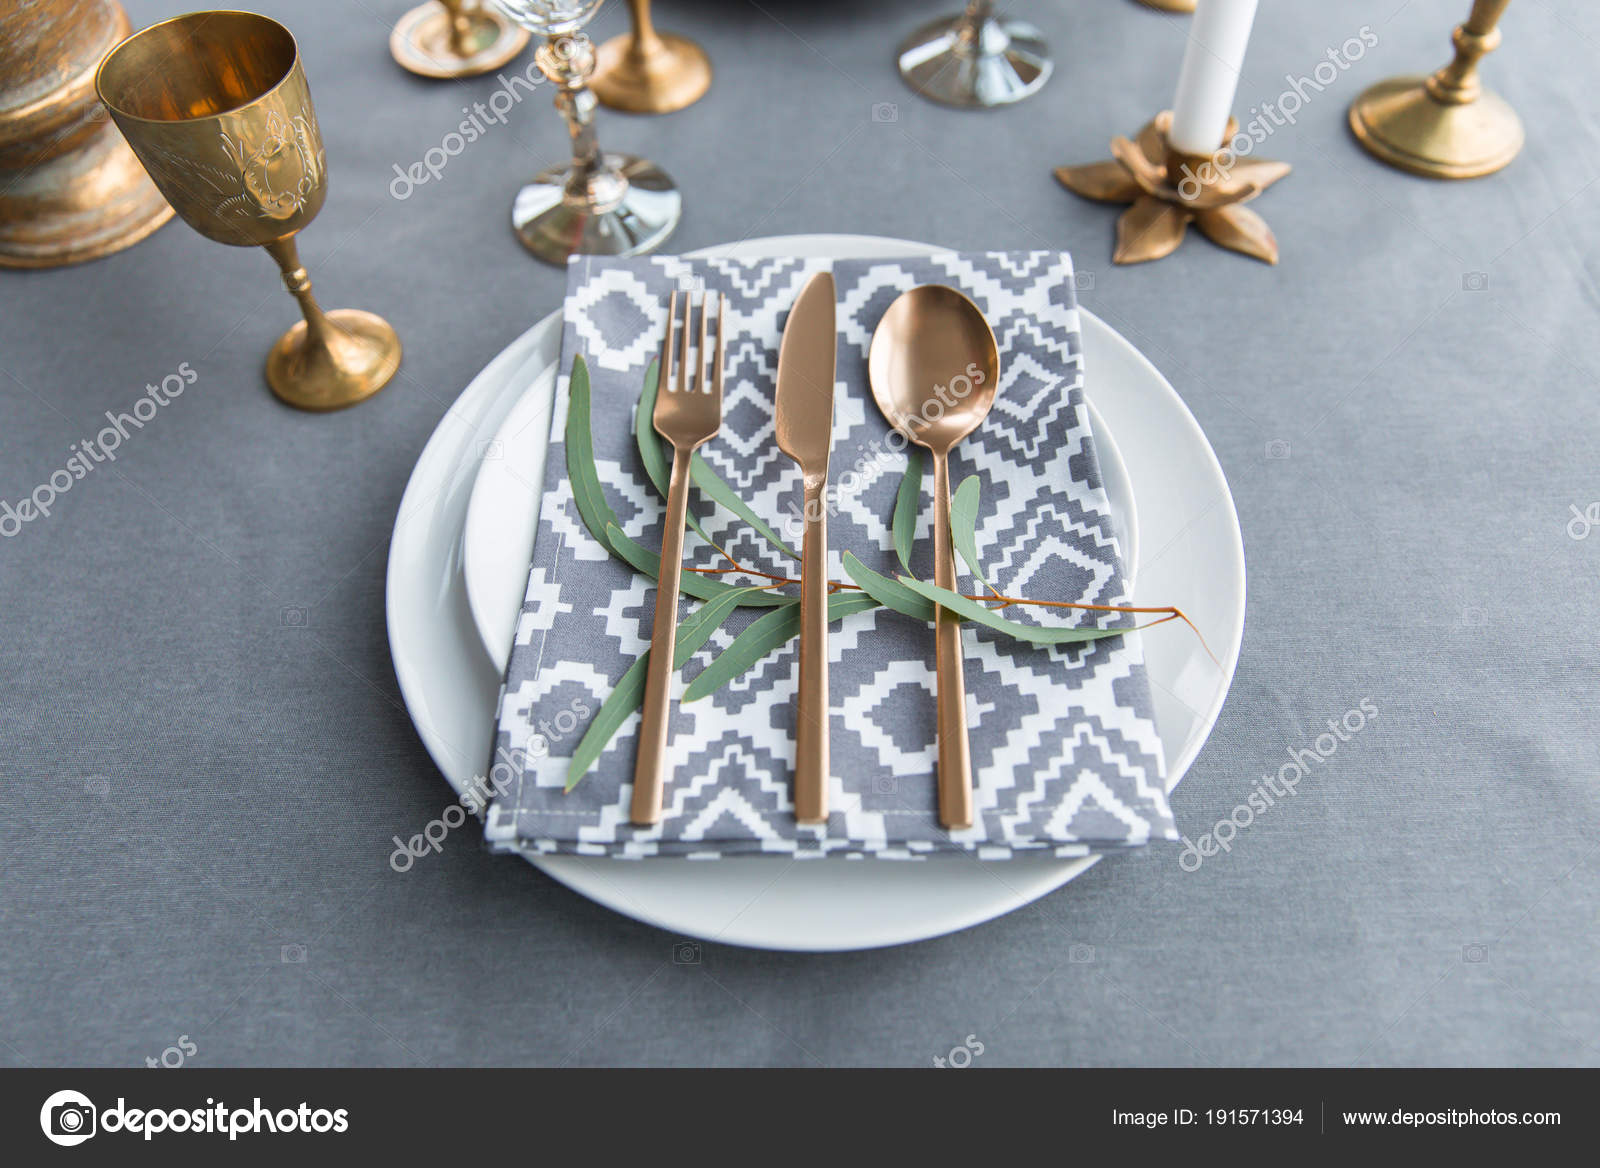 Close up view of rustic table setting with vintage tarnished silverware napkin on plates green plant and wine glasses u2014 Photo by AntonMatyukha & Close View Rustic Table Setting Vintage Tarnished Silverware Napkin ...